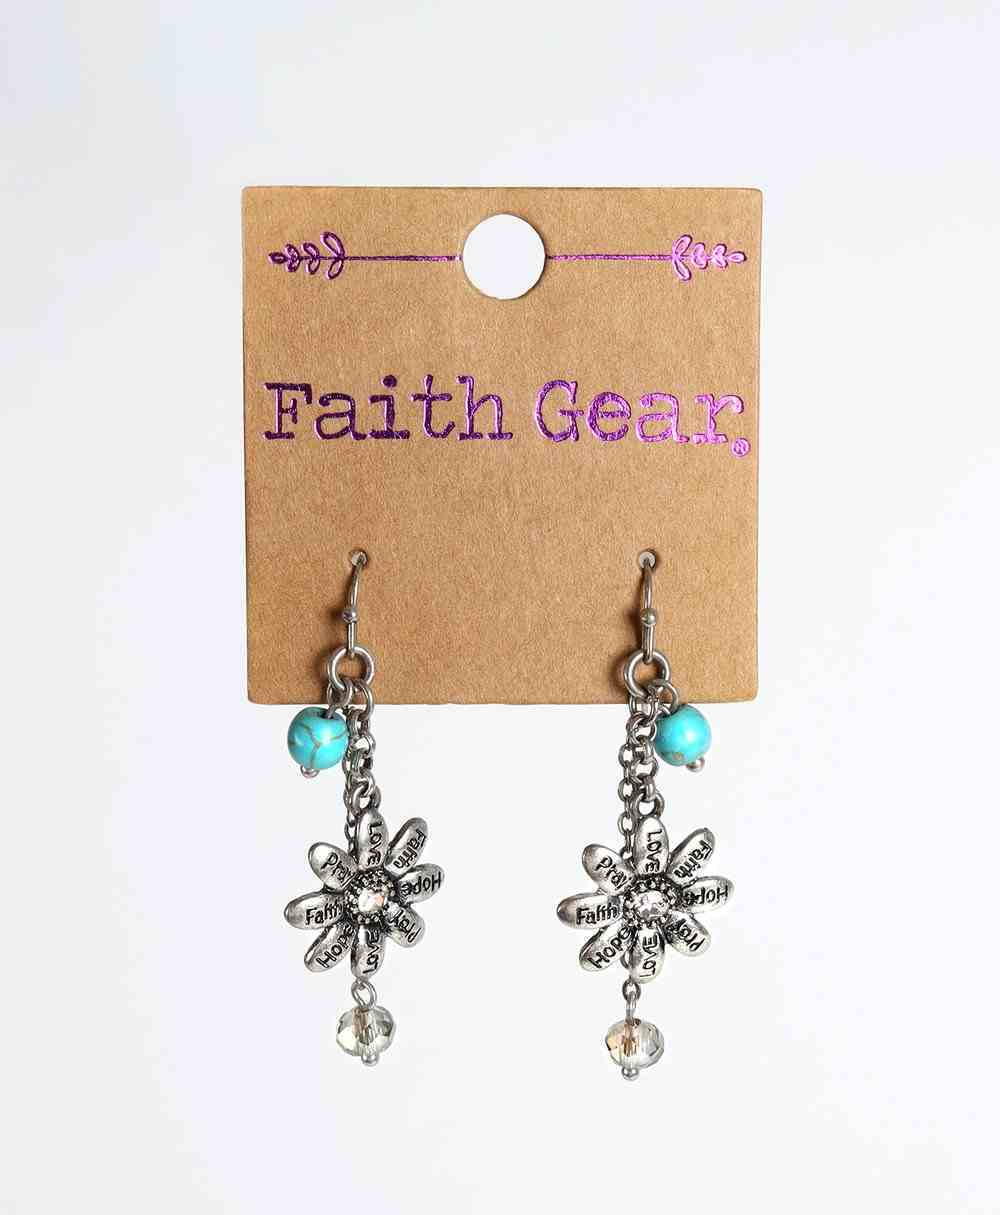 Women's Faith Gear Earrings: Flowers, (Aged Silver/turquoise Beads) Jewellery